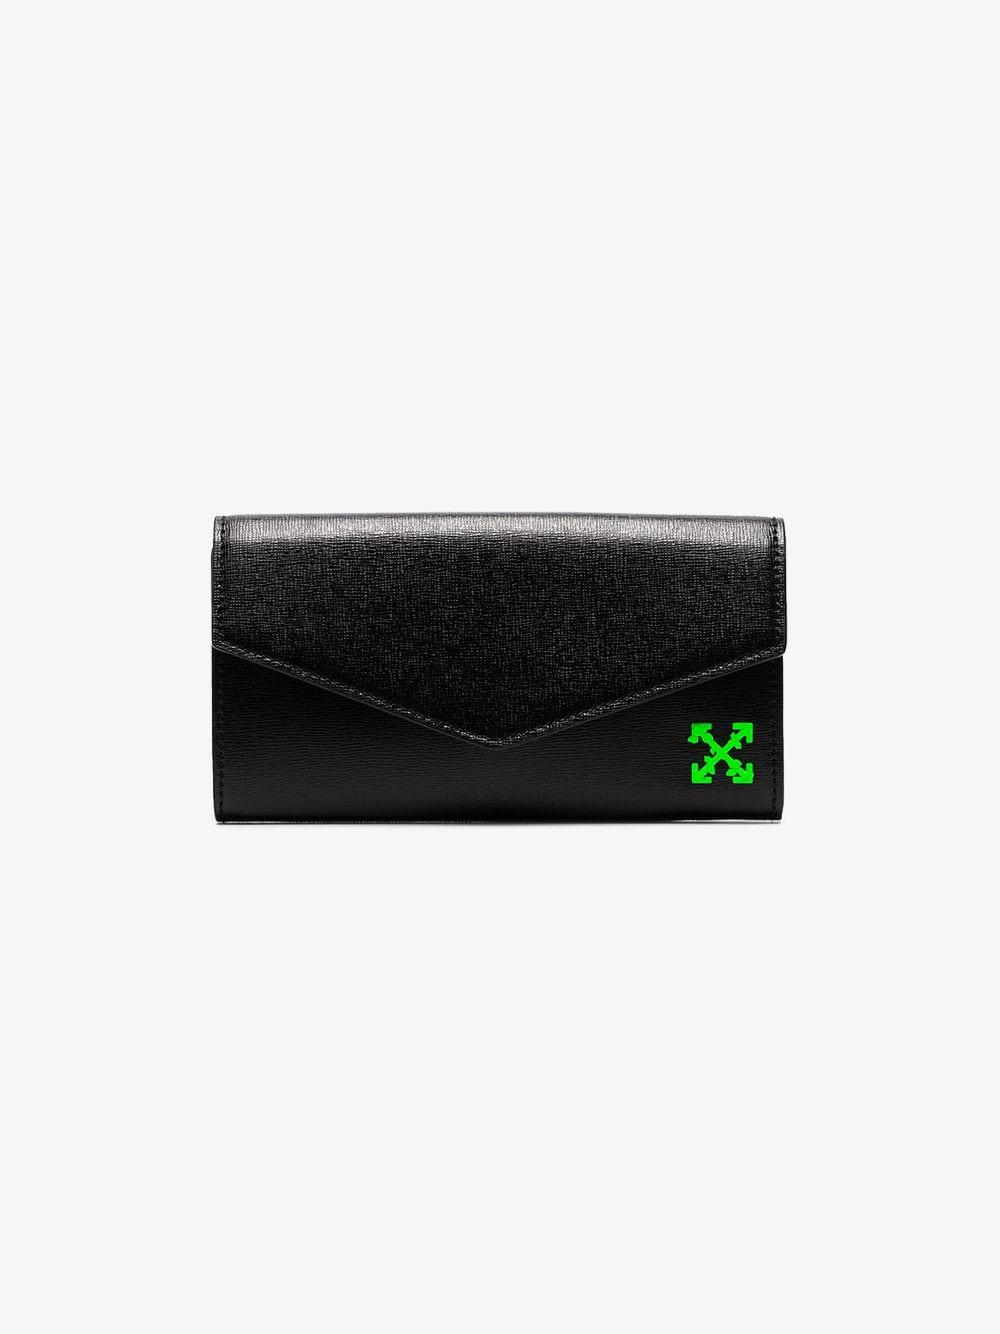 d865fd9d0f83 Off-White c o Virgil Abloh. Women s Black And Green Arrow Logo Grained  Leather Wallet